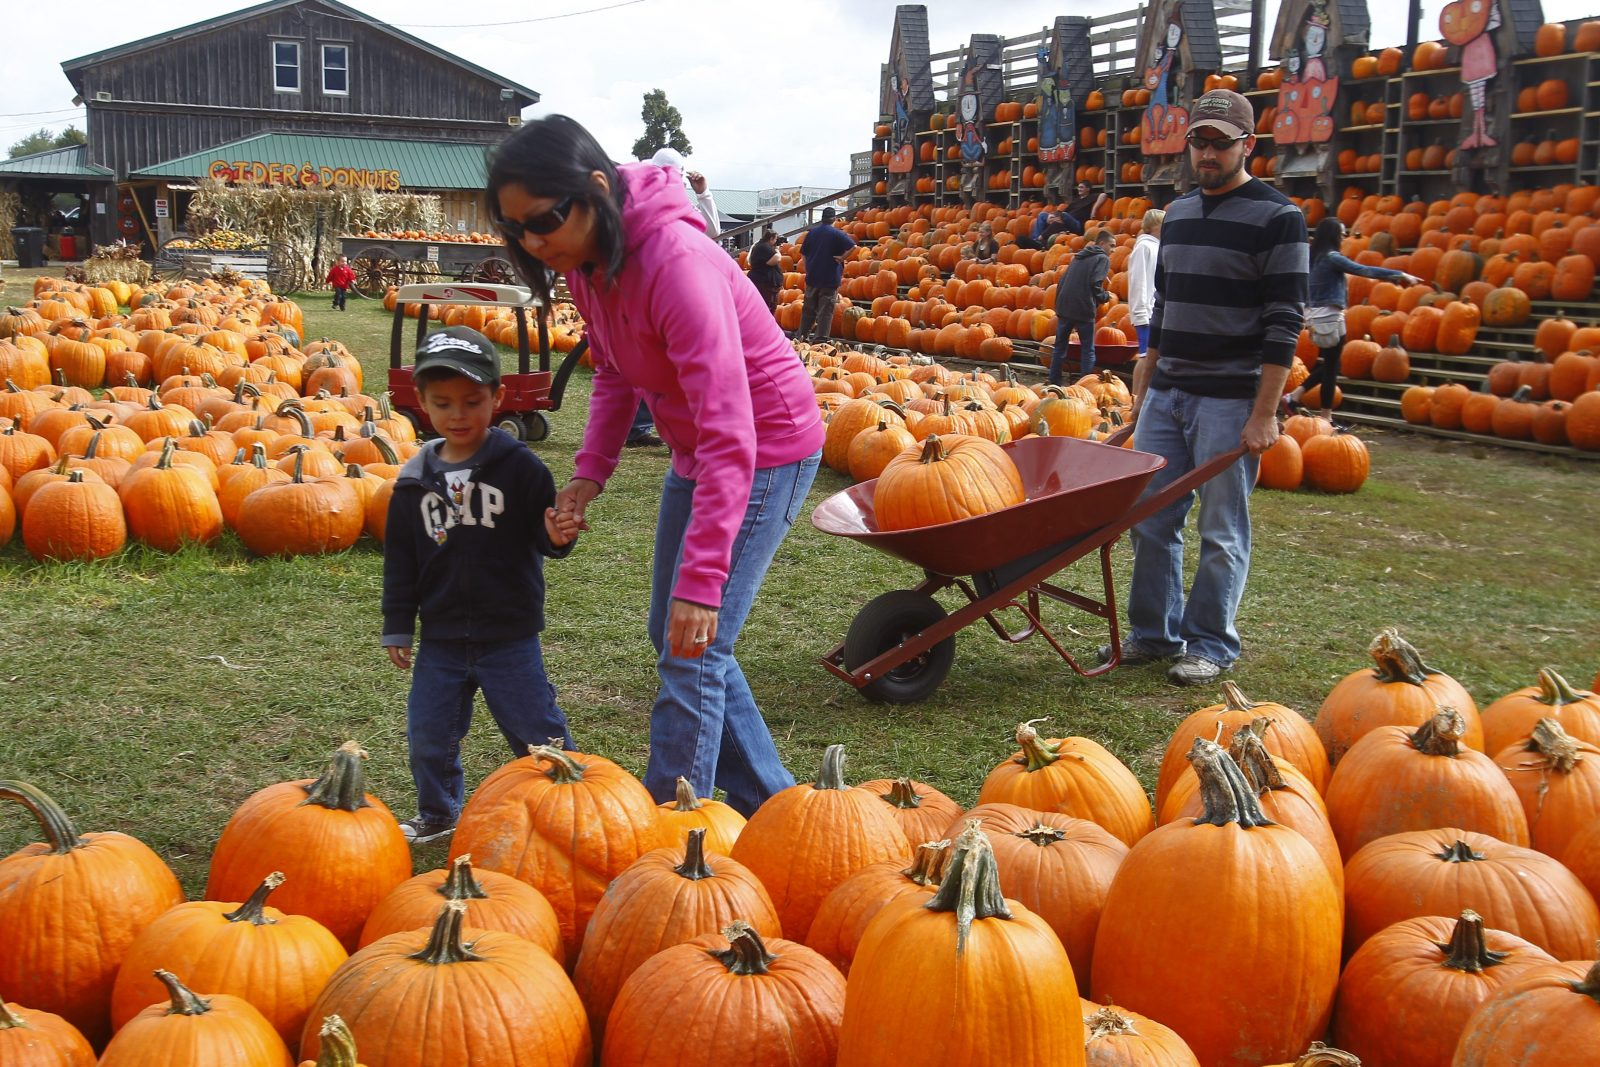 Three-year-old Jackson and his parents, Sandi and Derrick Harvill, search for another pumpkin to take home from the Great Pumpkin Farm in Clarence.